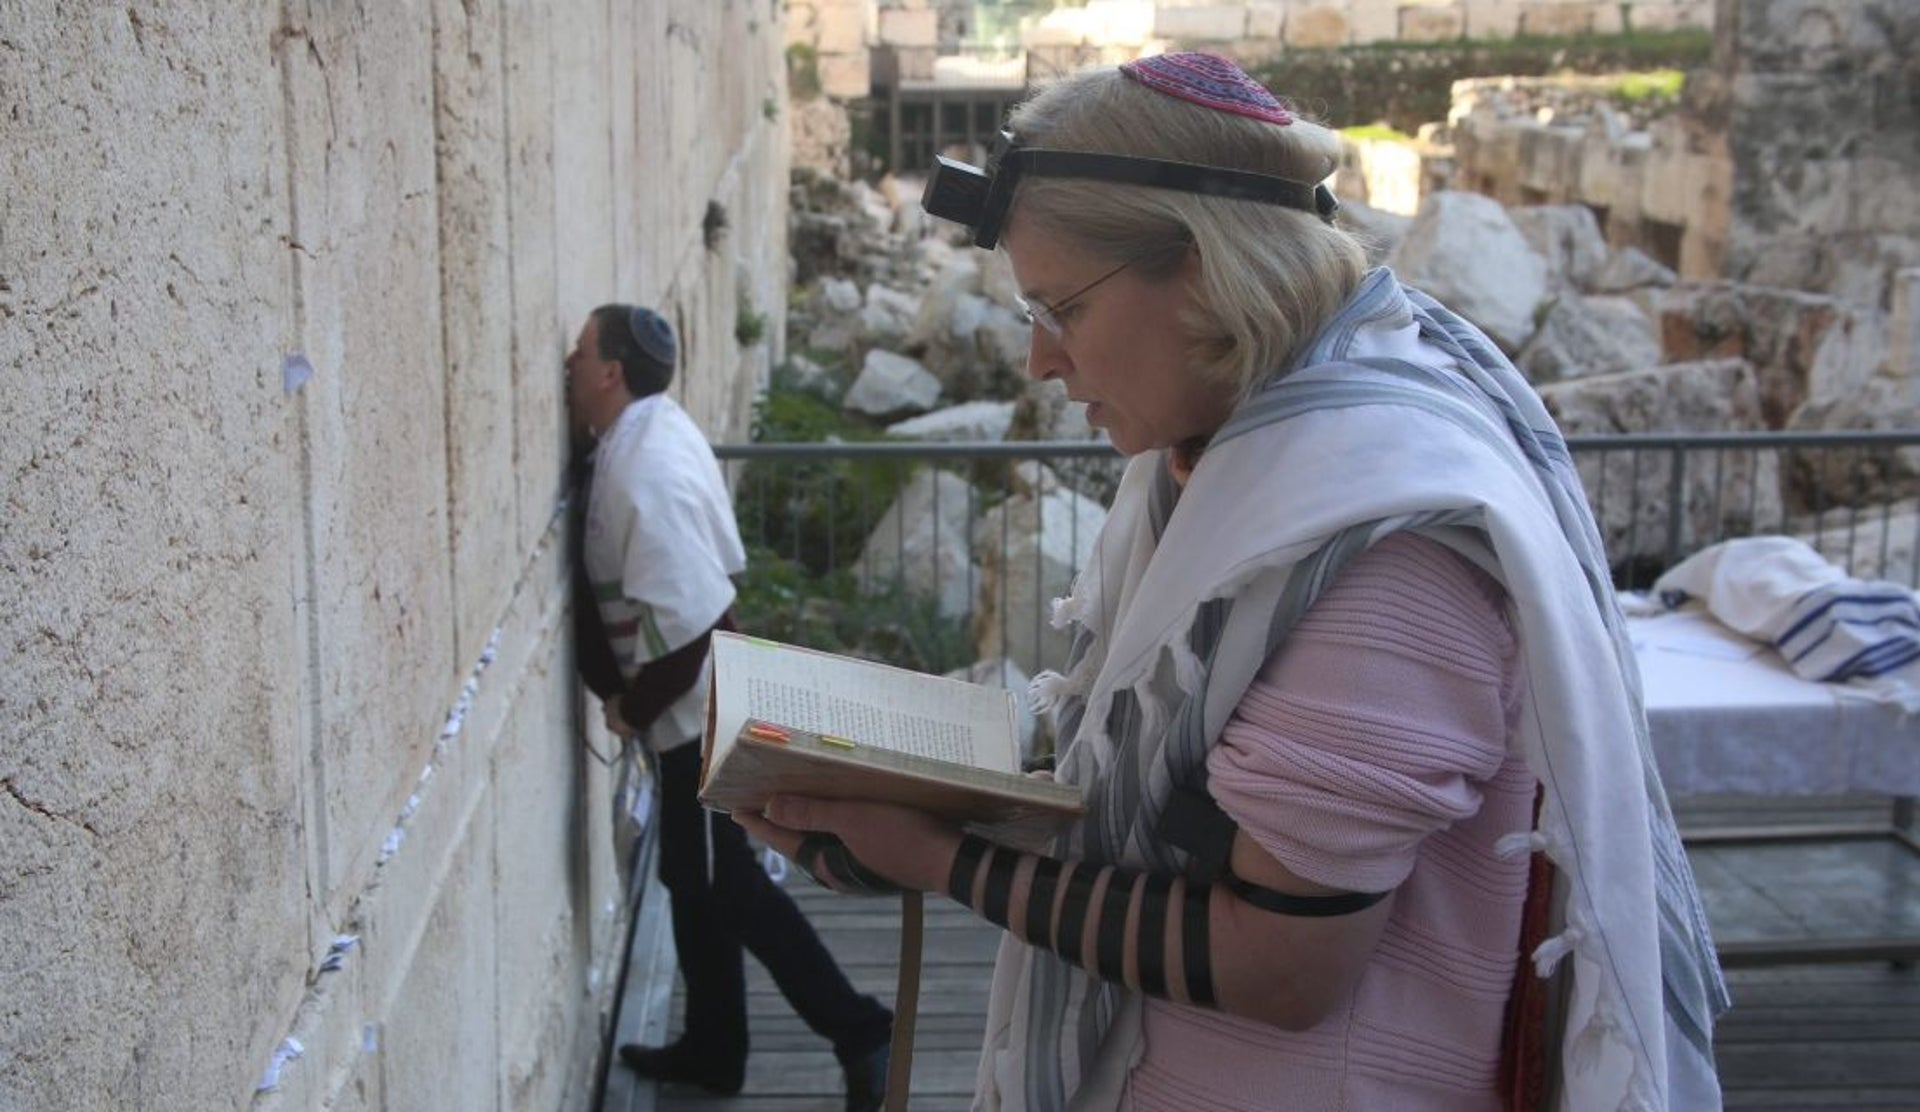 A woman prays at the Western Wall, Feb. 25, 2016.